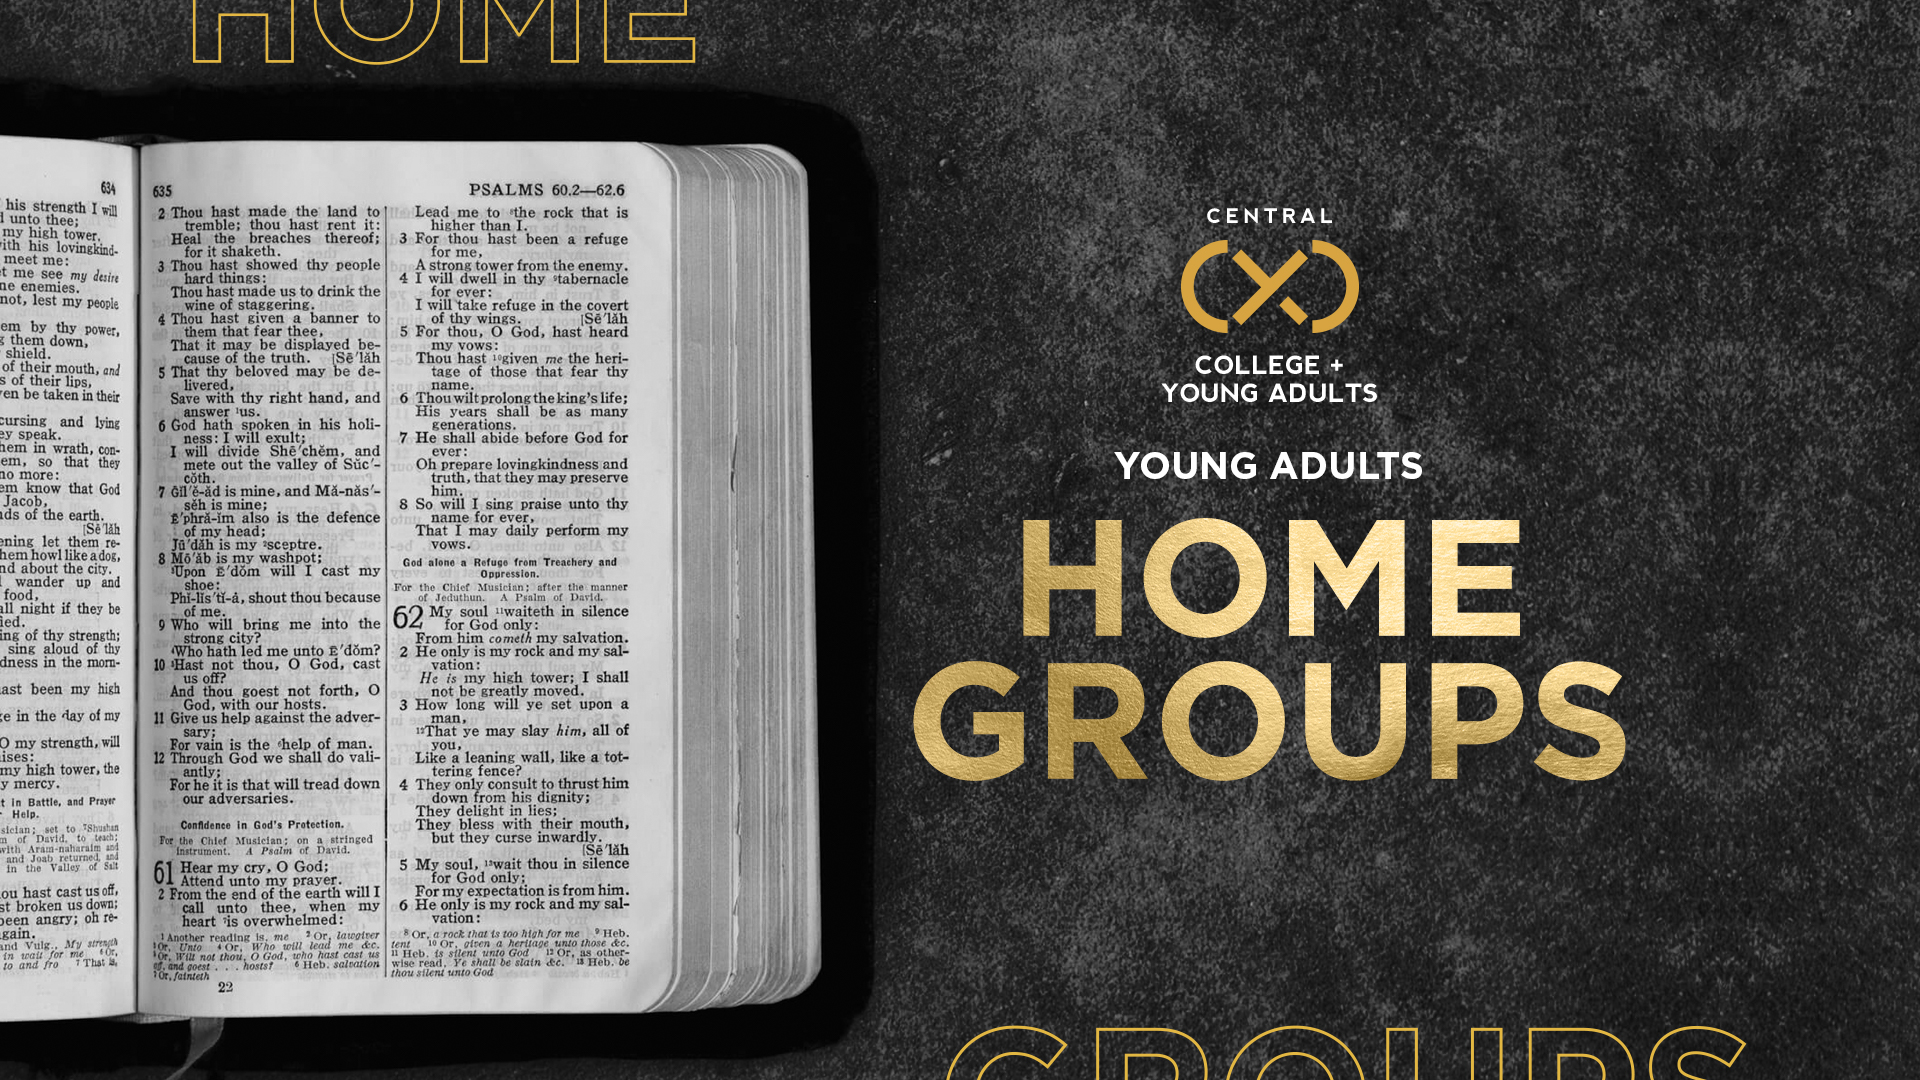 Young Adult Home Groups